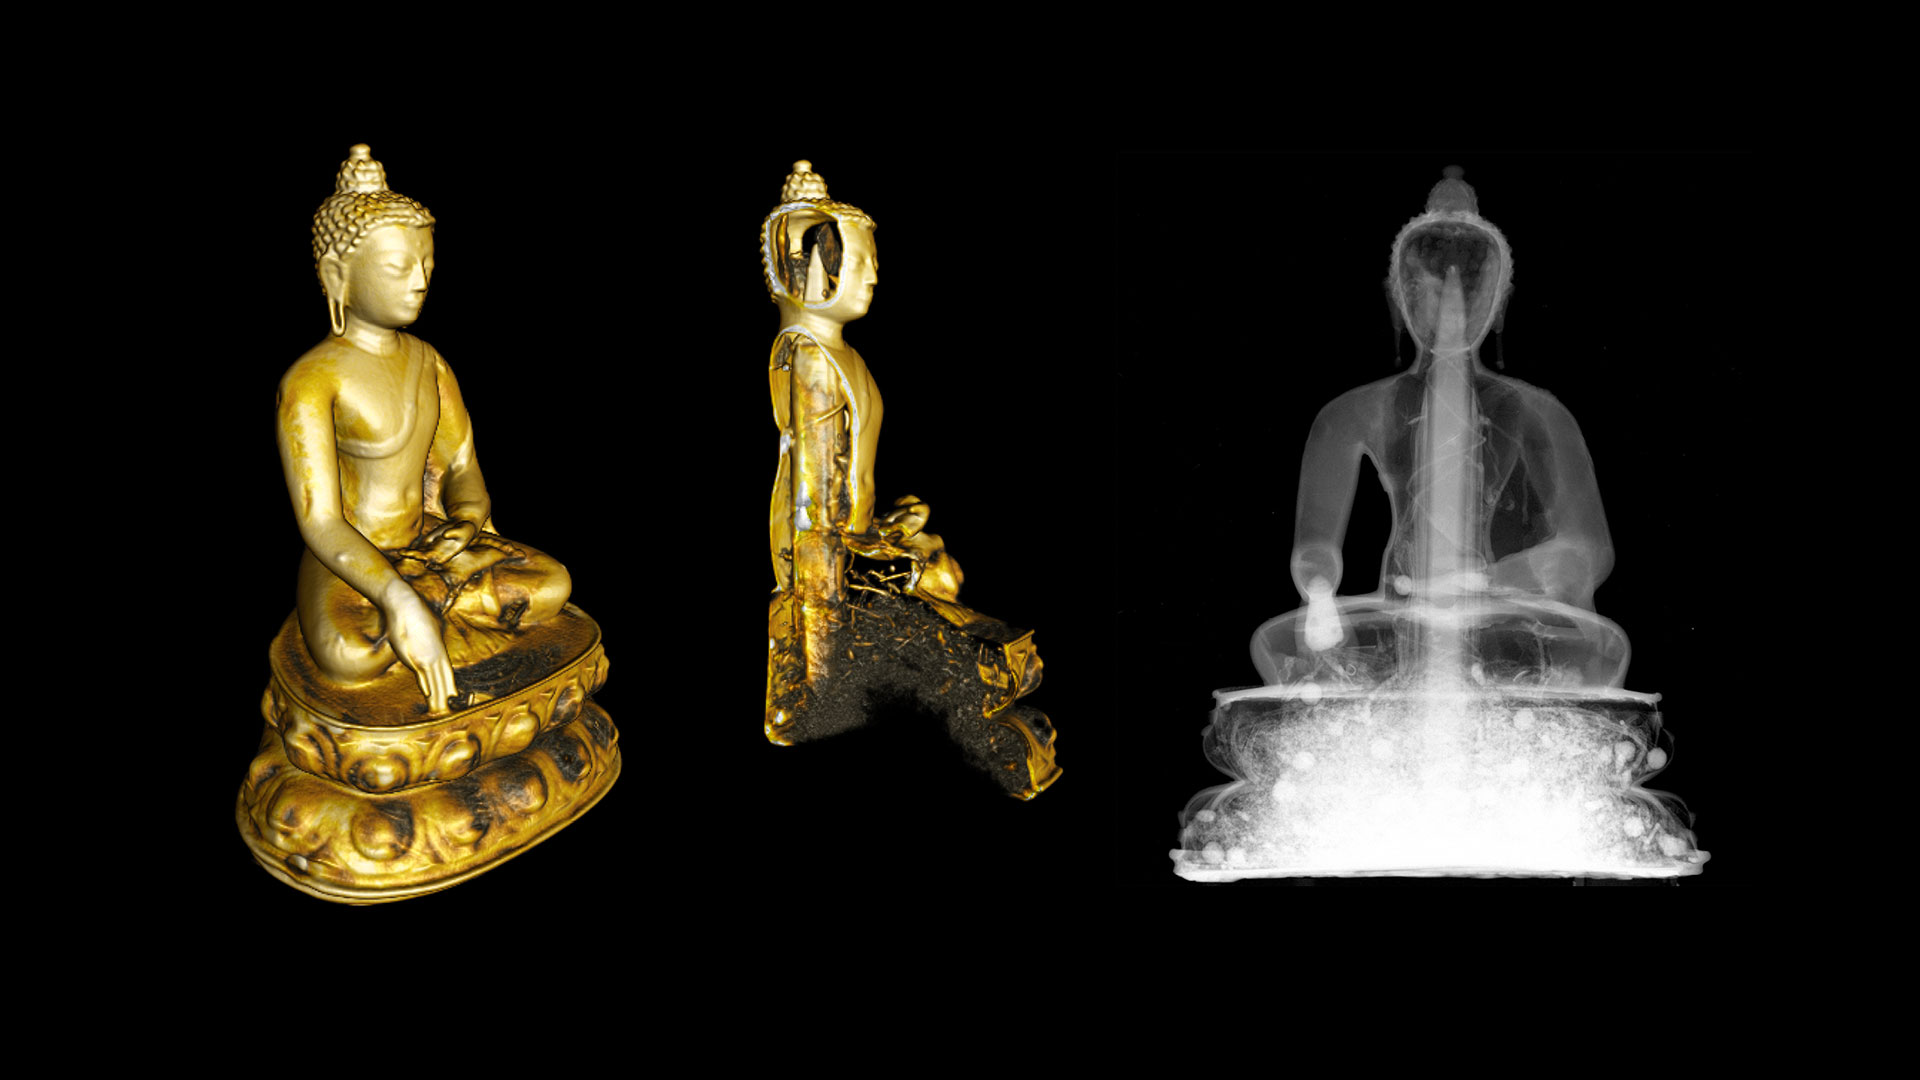 Buddha Shakyamuni, 14th or 15th century CE. Sitting Buddha statue from western Tibet, 15 centimetres high, made of brass and copper, with original seal. <br> Figure: Paul Scherrer Institute / Neutron Imaging and Activation Group